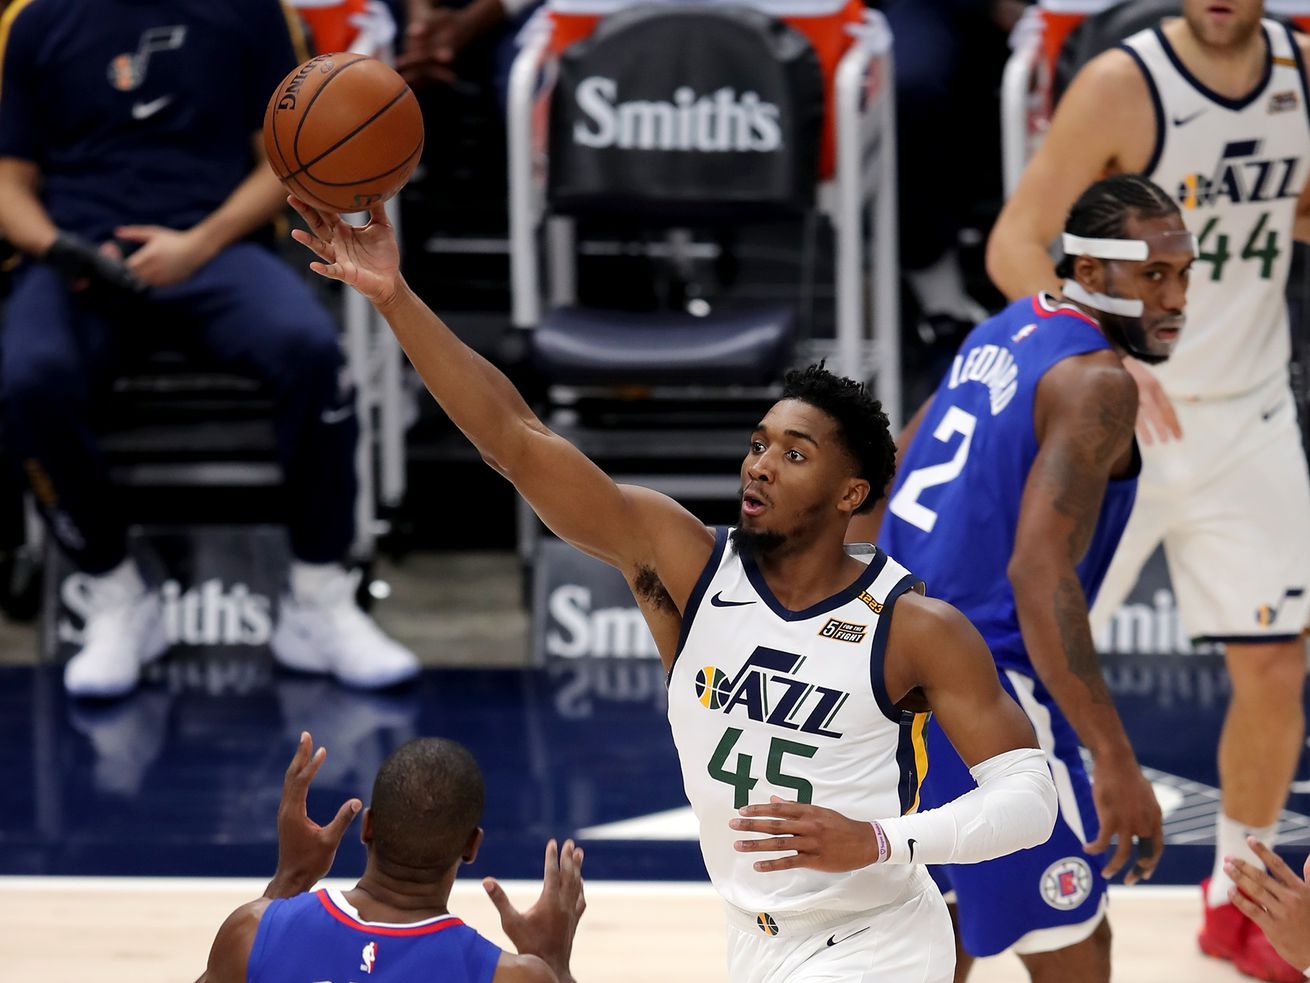 'If he's not scoring, what else can he do?': TNT halftime crew debates Donovan Mitchell's stardom